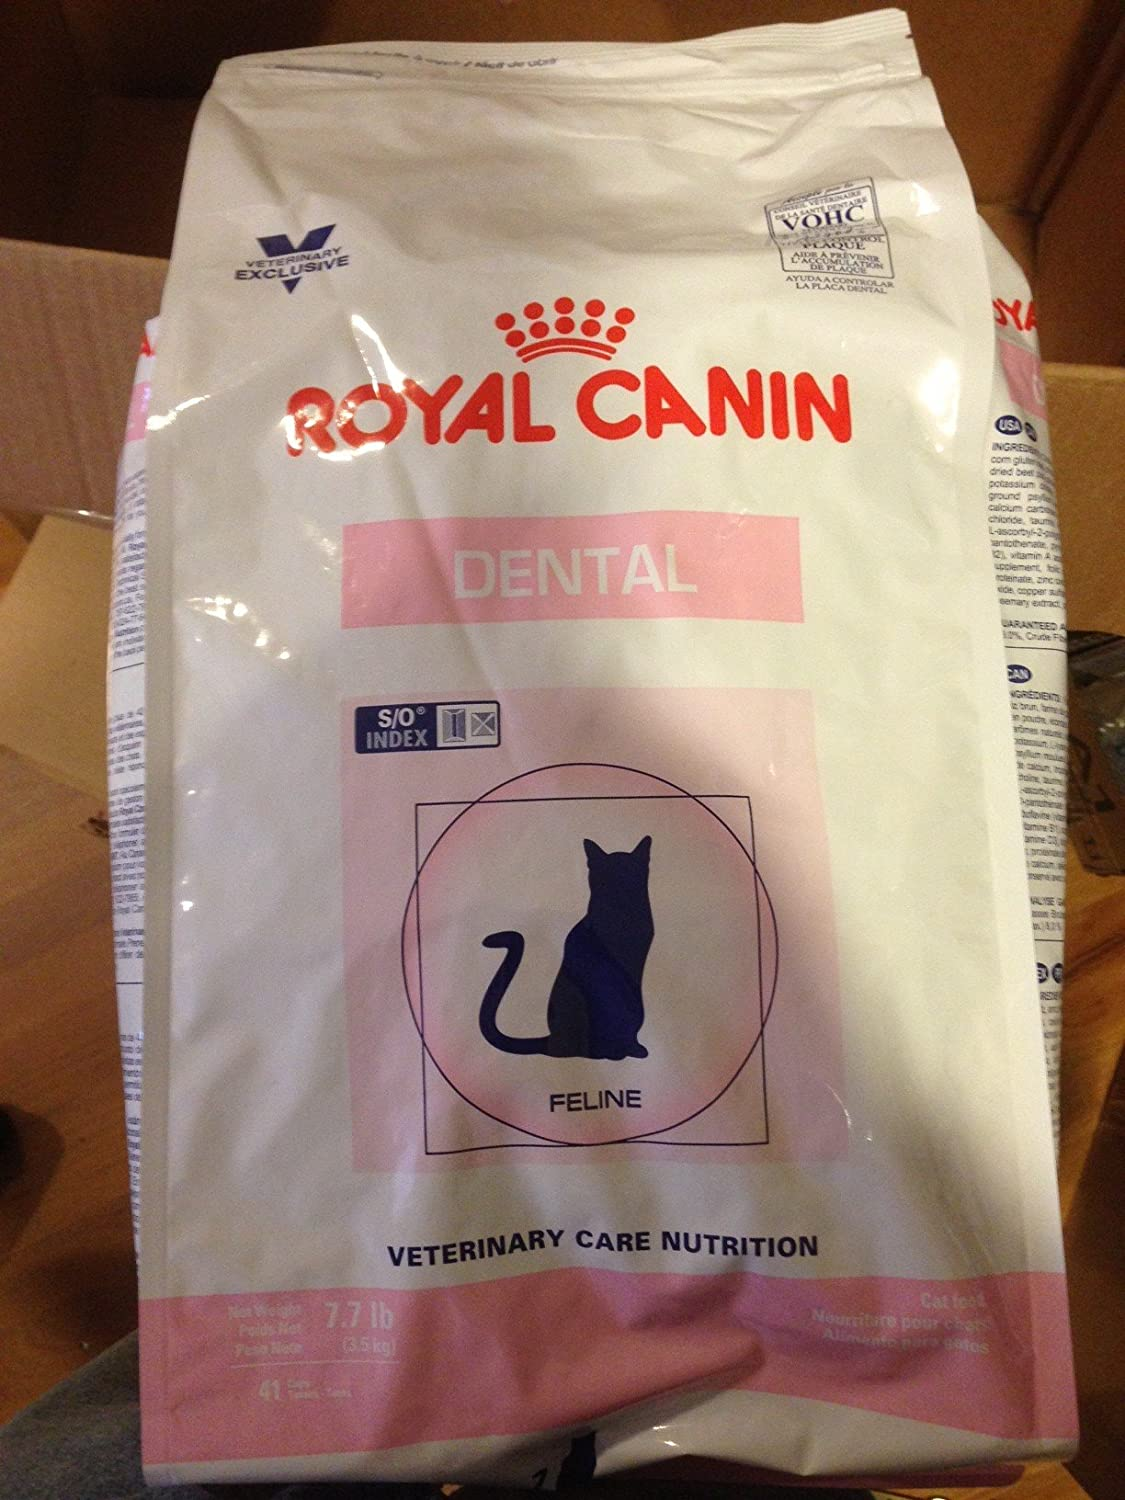 Royal Canin Feline Dental Cat Food Dry 7.7 Pound Bag (3.5 kg) For Cats and Kittens